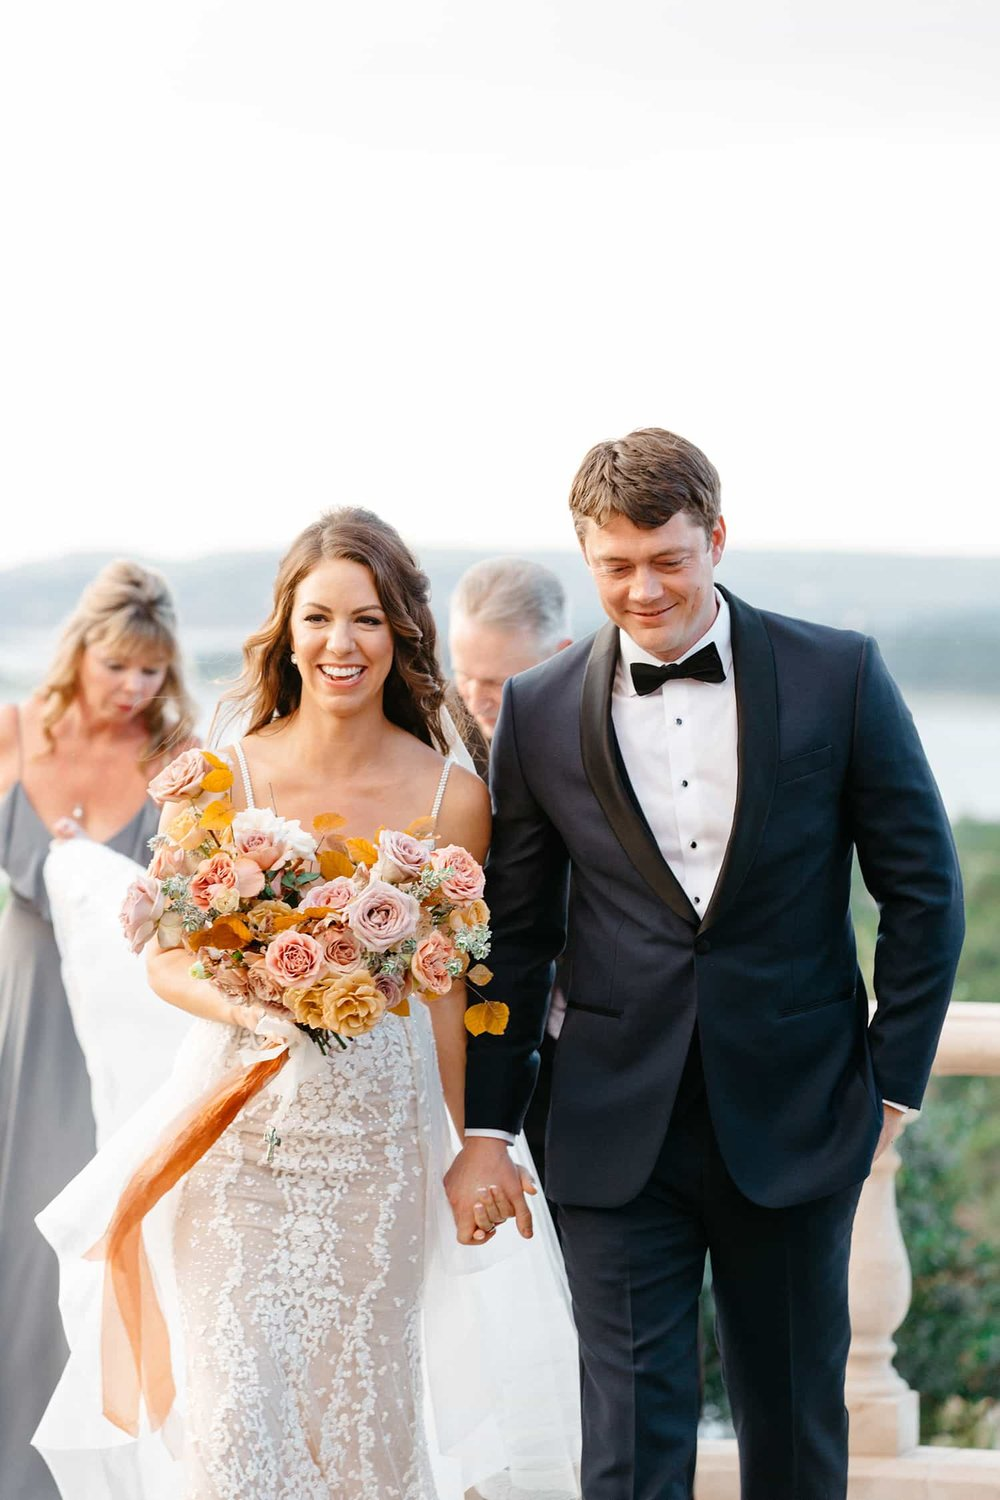 Bride with bridal bouquet by Color Theory Collective